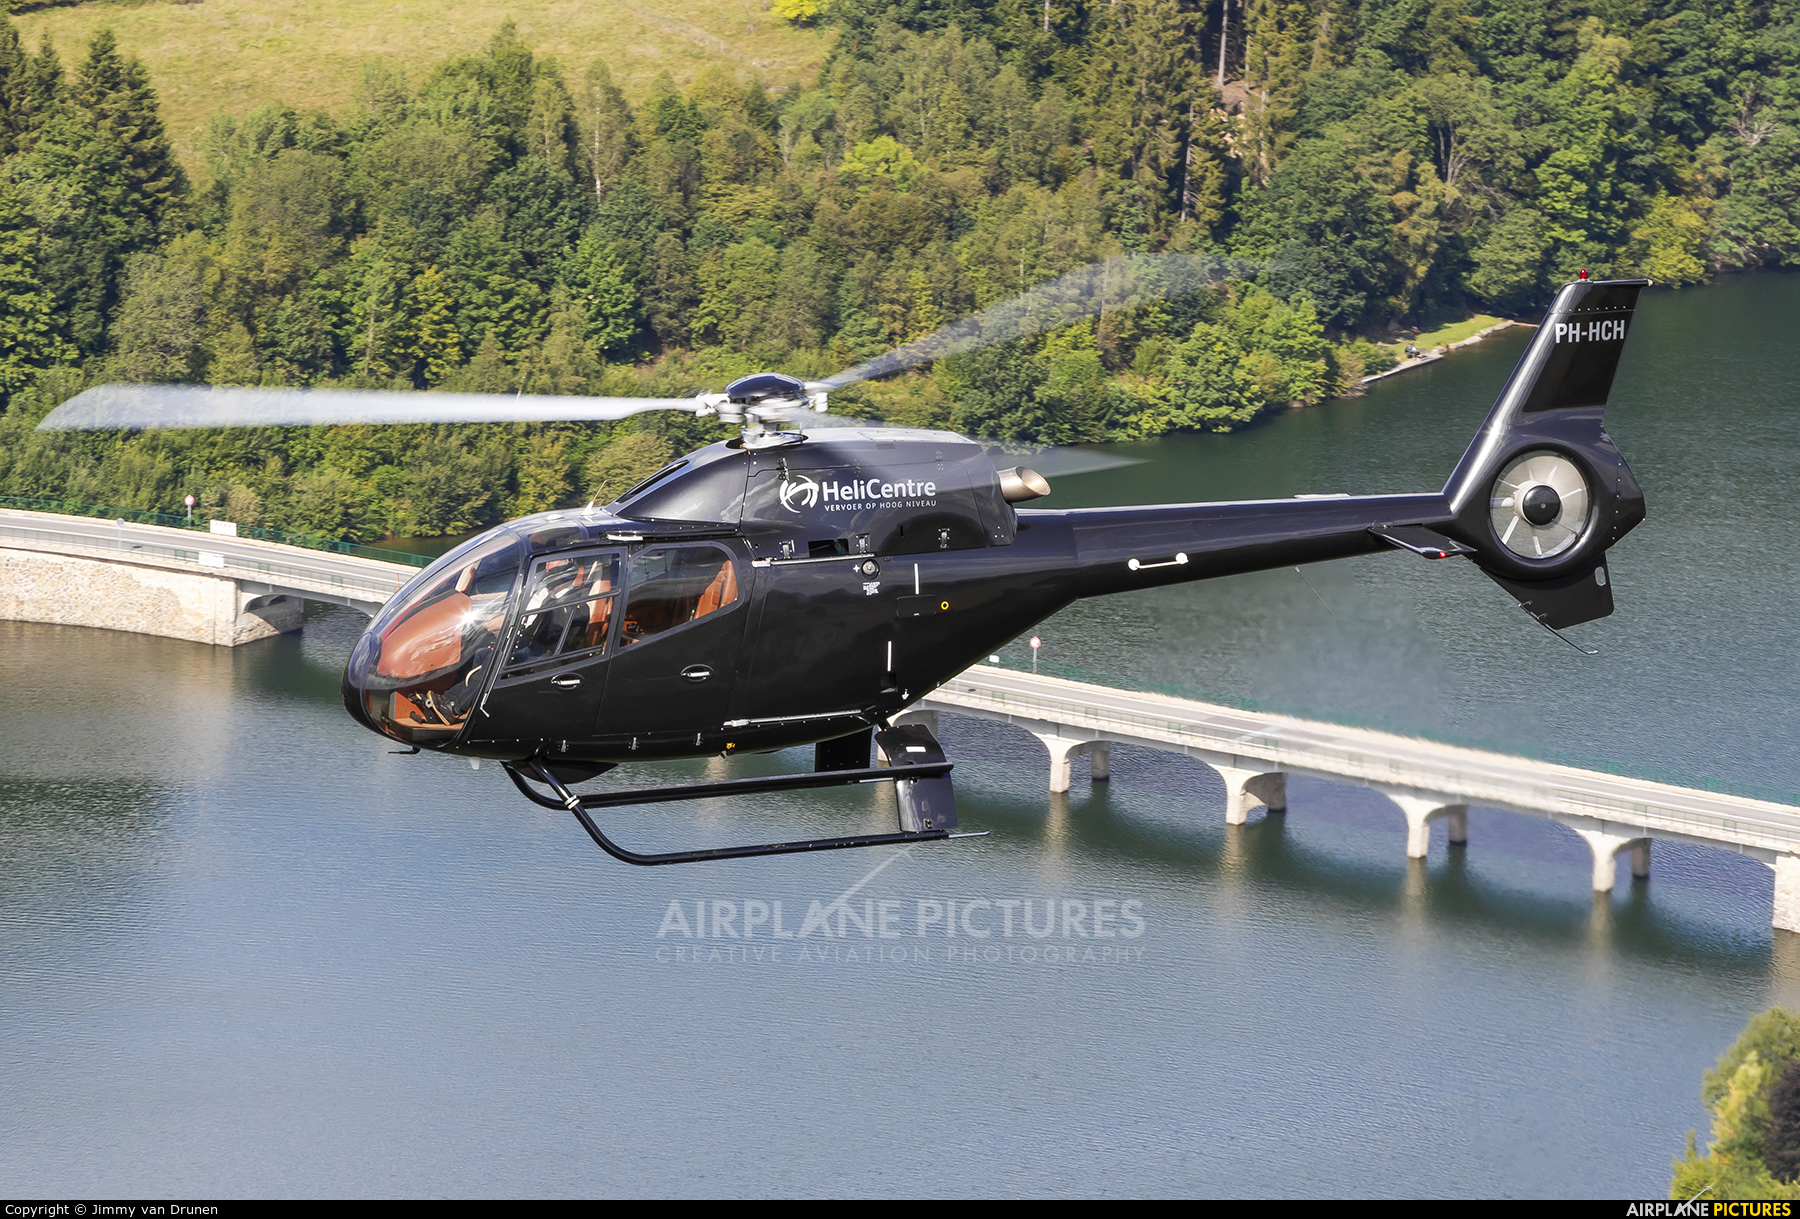 Helicentre PH-HCH aircraft at In Flight - Belgium